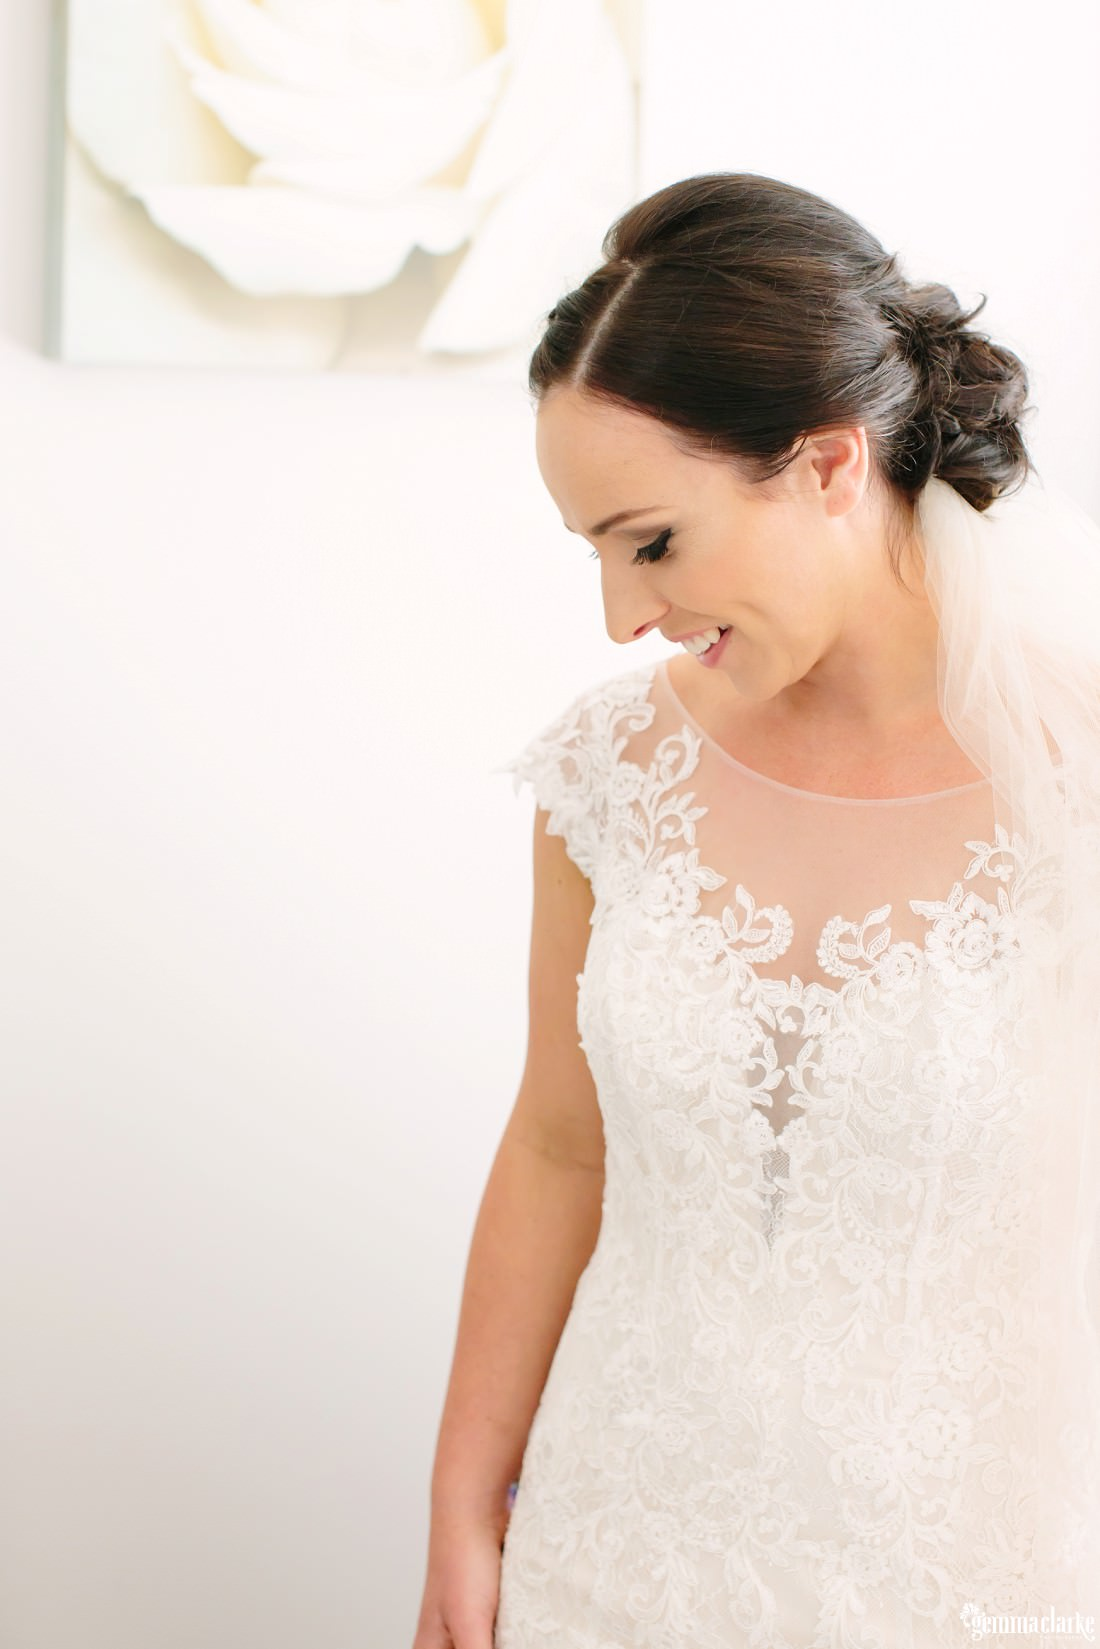 A bride smiling and looking down at her dress